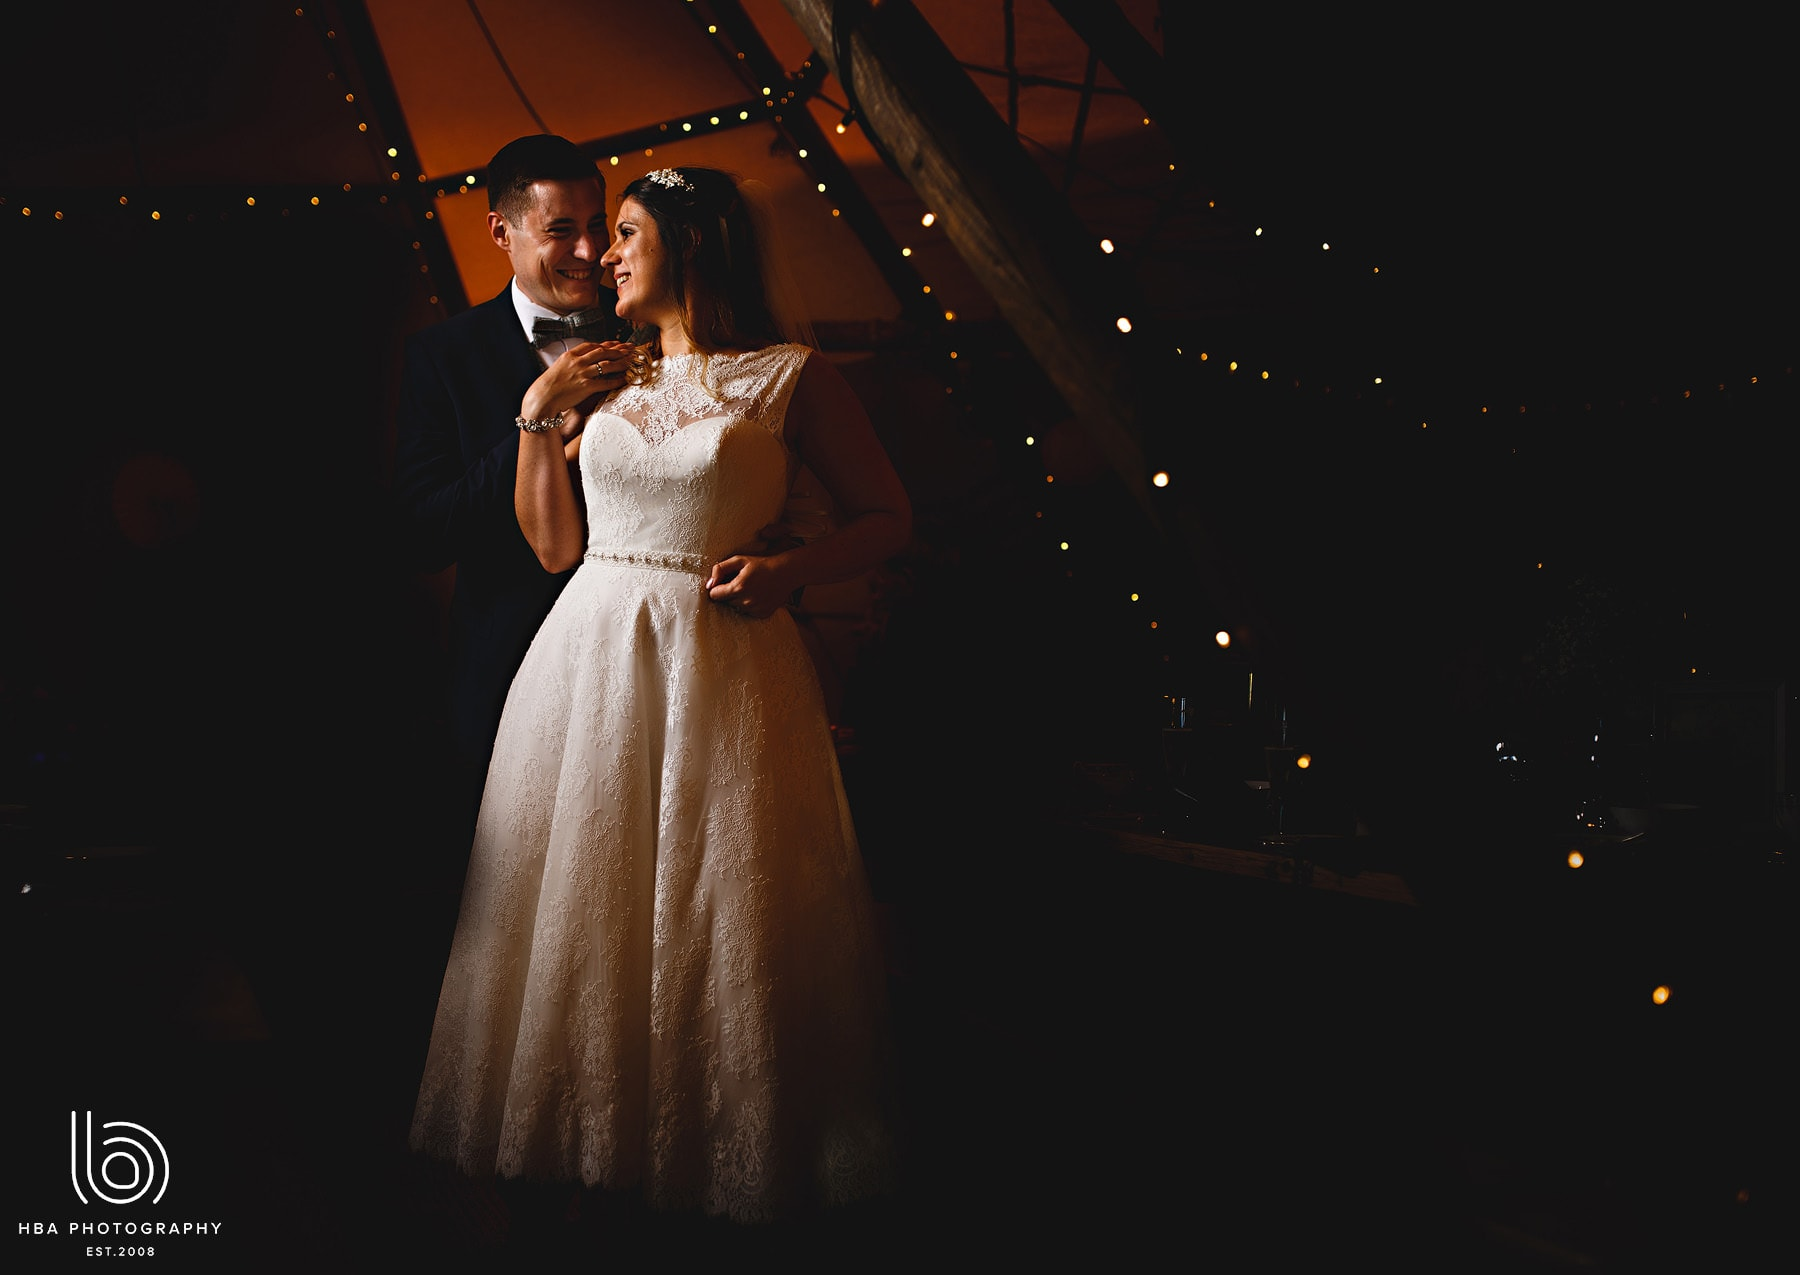 The bride & groom inside the tipi